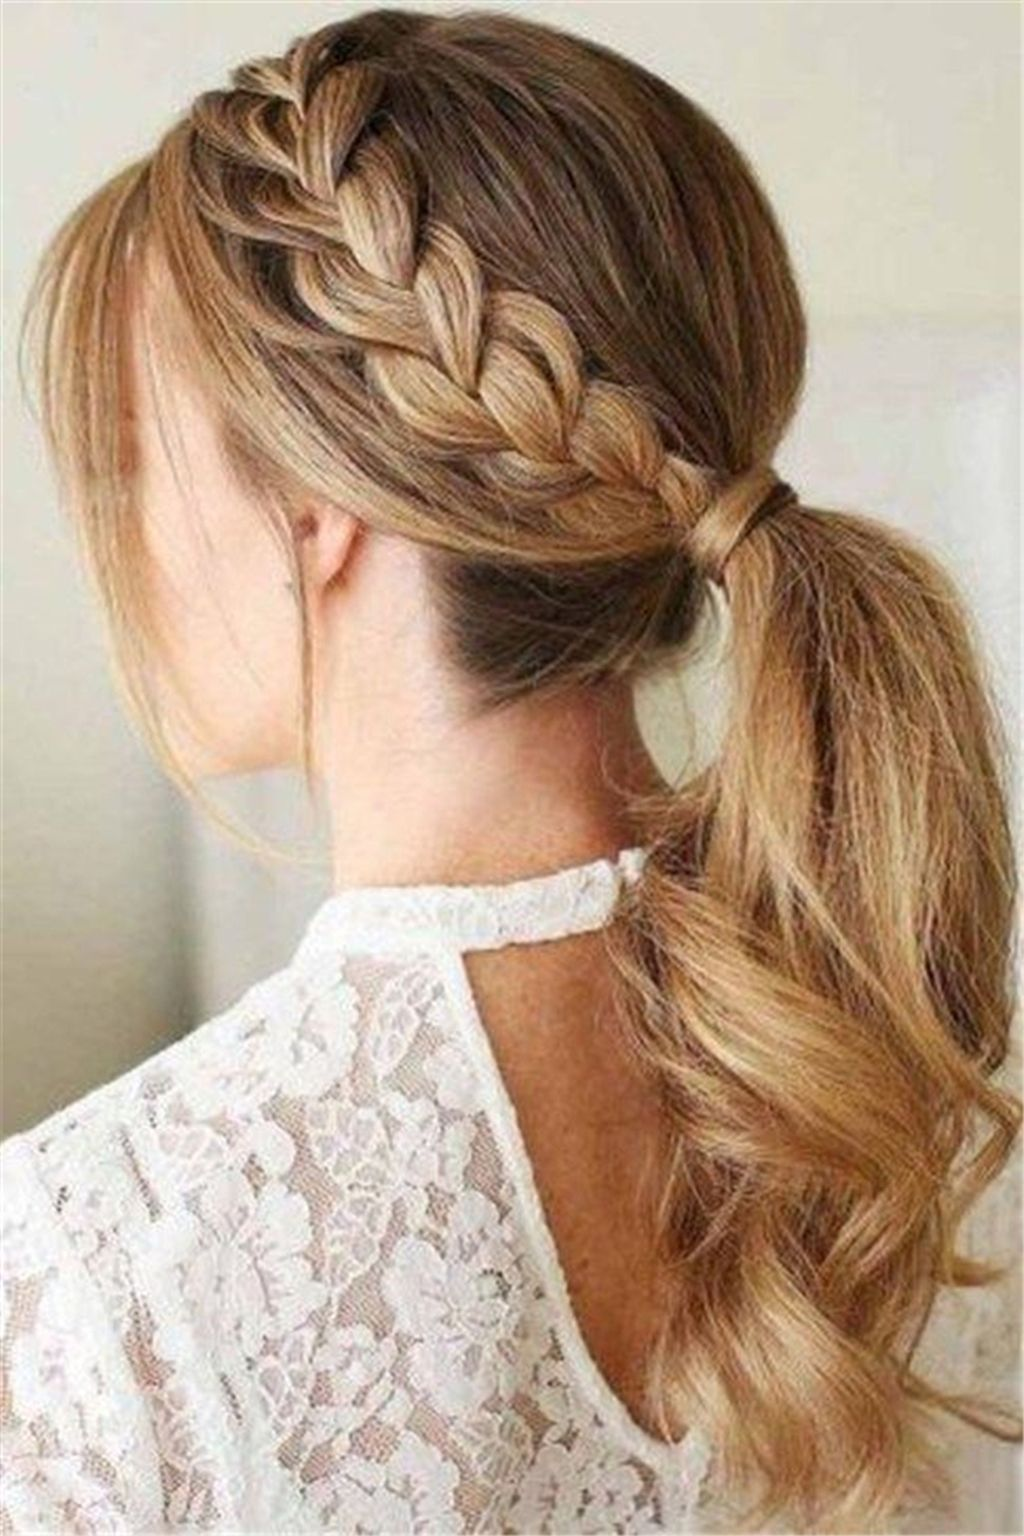 40 Casual Daily Hairstyles Ideas For You Right Now In 2020 With Images Braids For Long Hair Long Hair Styles French Braid Hairstyles